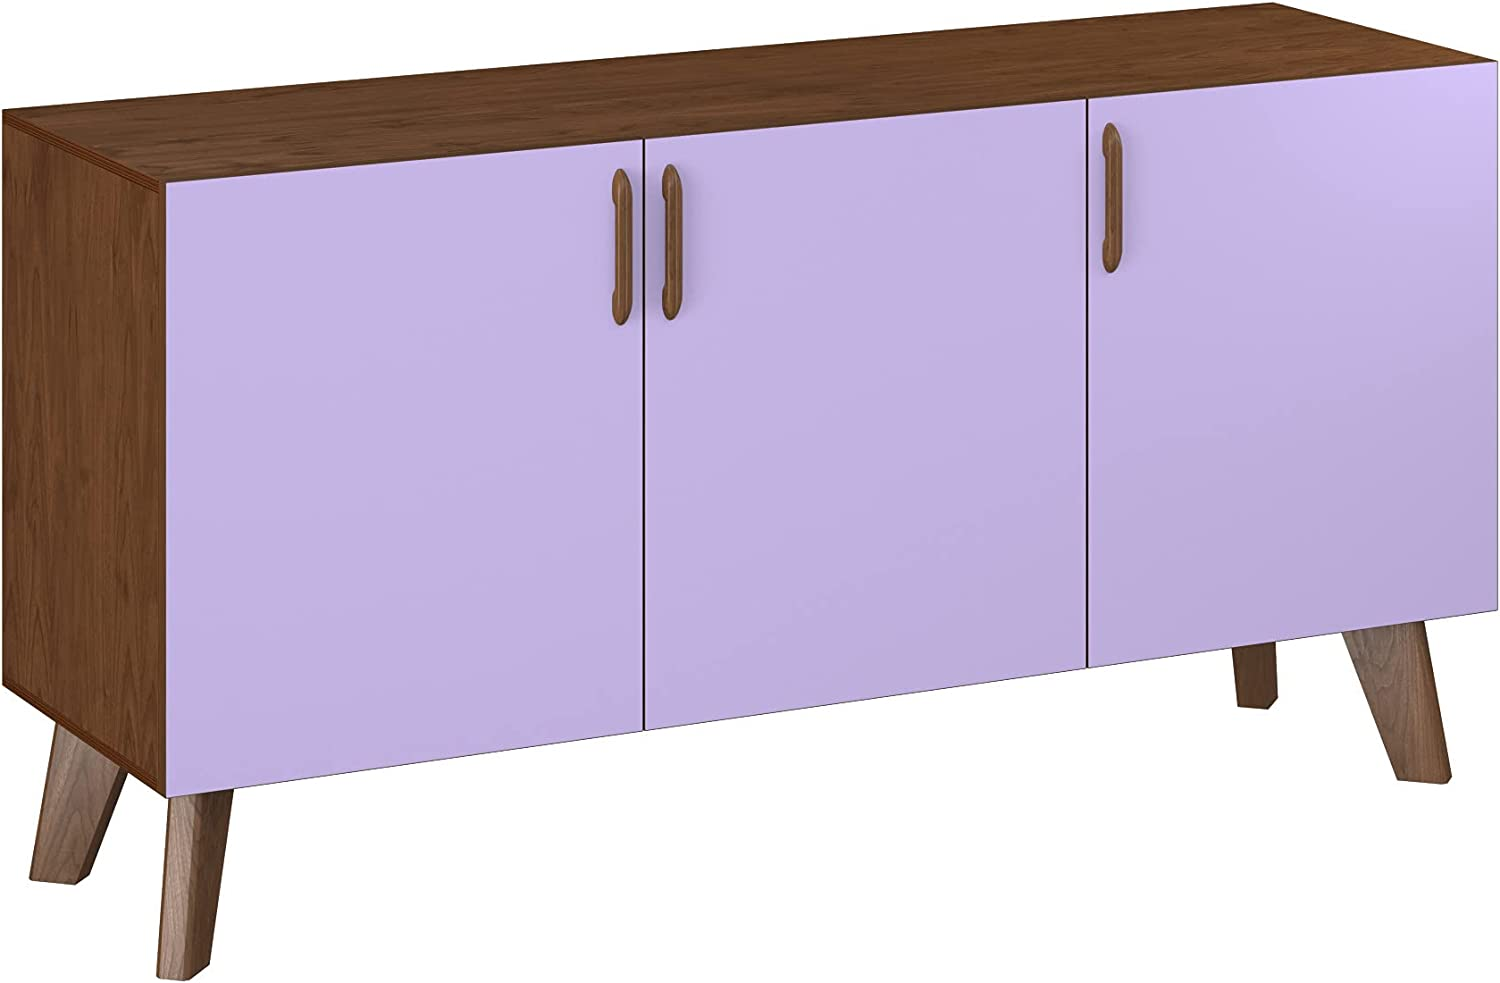 Poppy Sideboard store - Walnut Velma Design Colors in Free shipping anywhere the nation 5 11 Base Styl